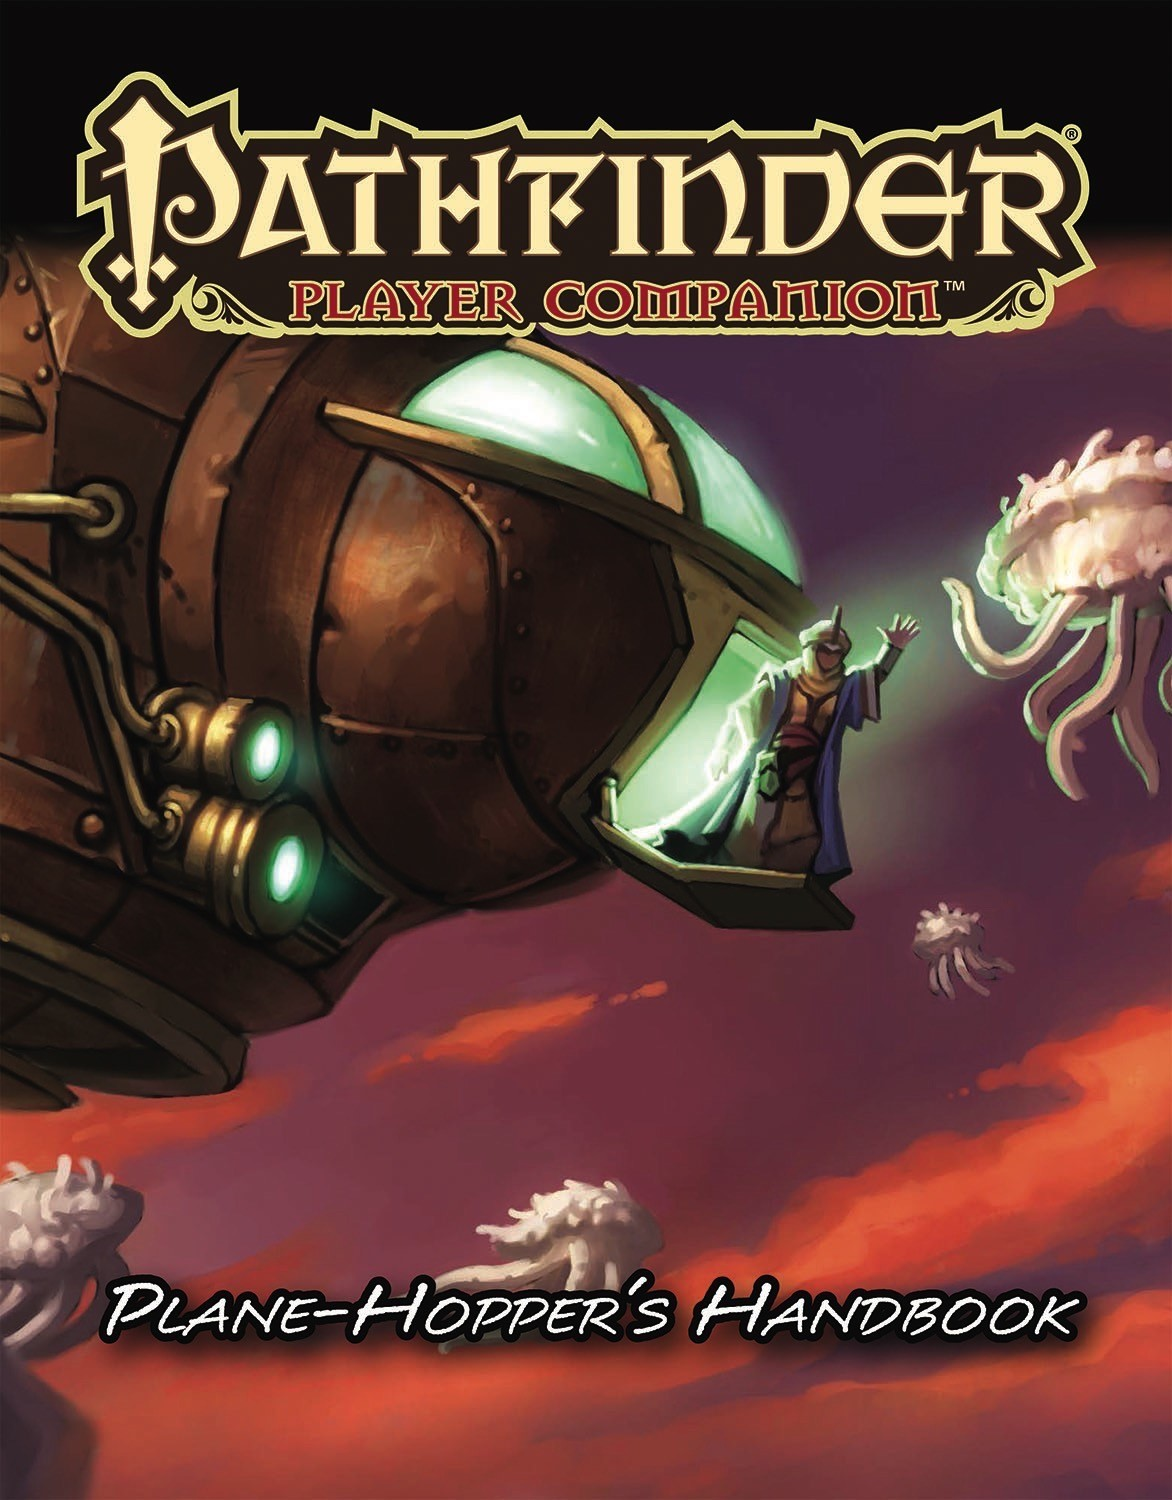 Pathfinder Player Companion: Plane-Hopper's Handbook by Paizo Publishing